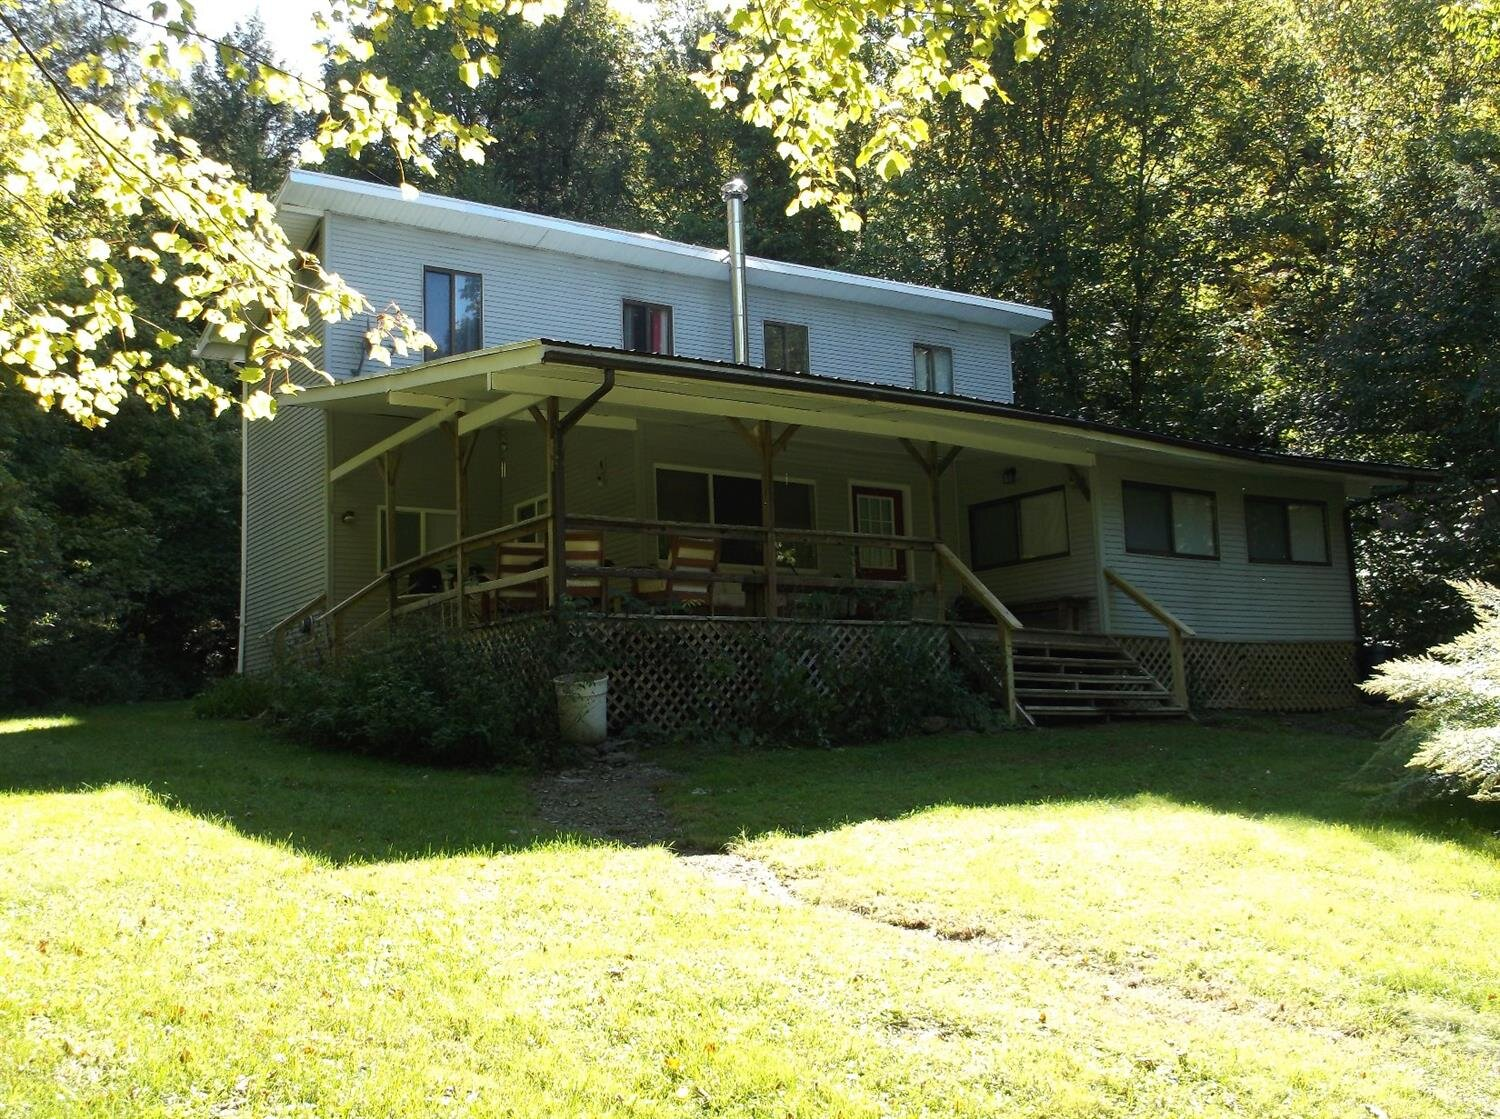 119,900 - 7 Bedrooms, 1 Bath12.35 AcresPond, Adjoins State Land